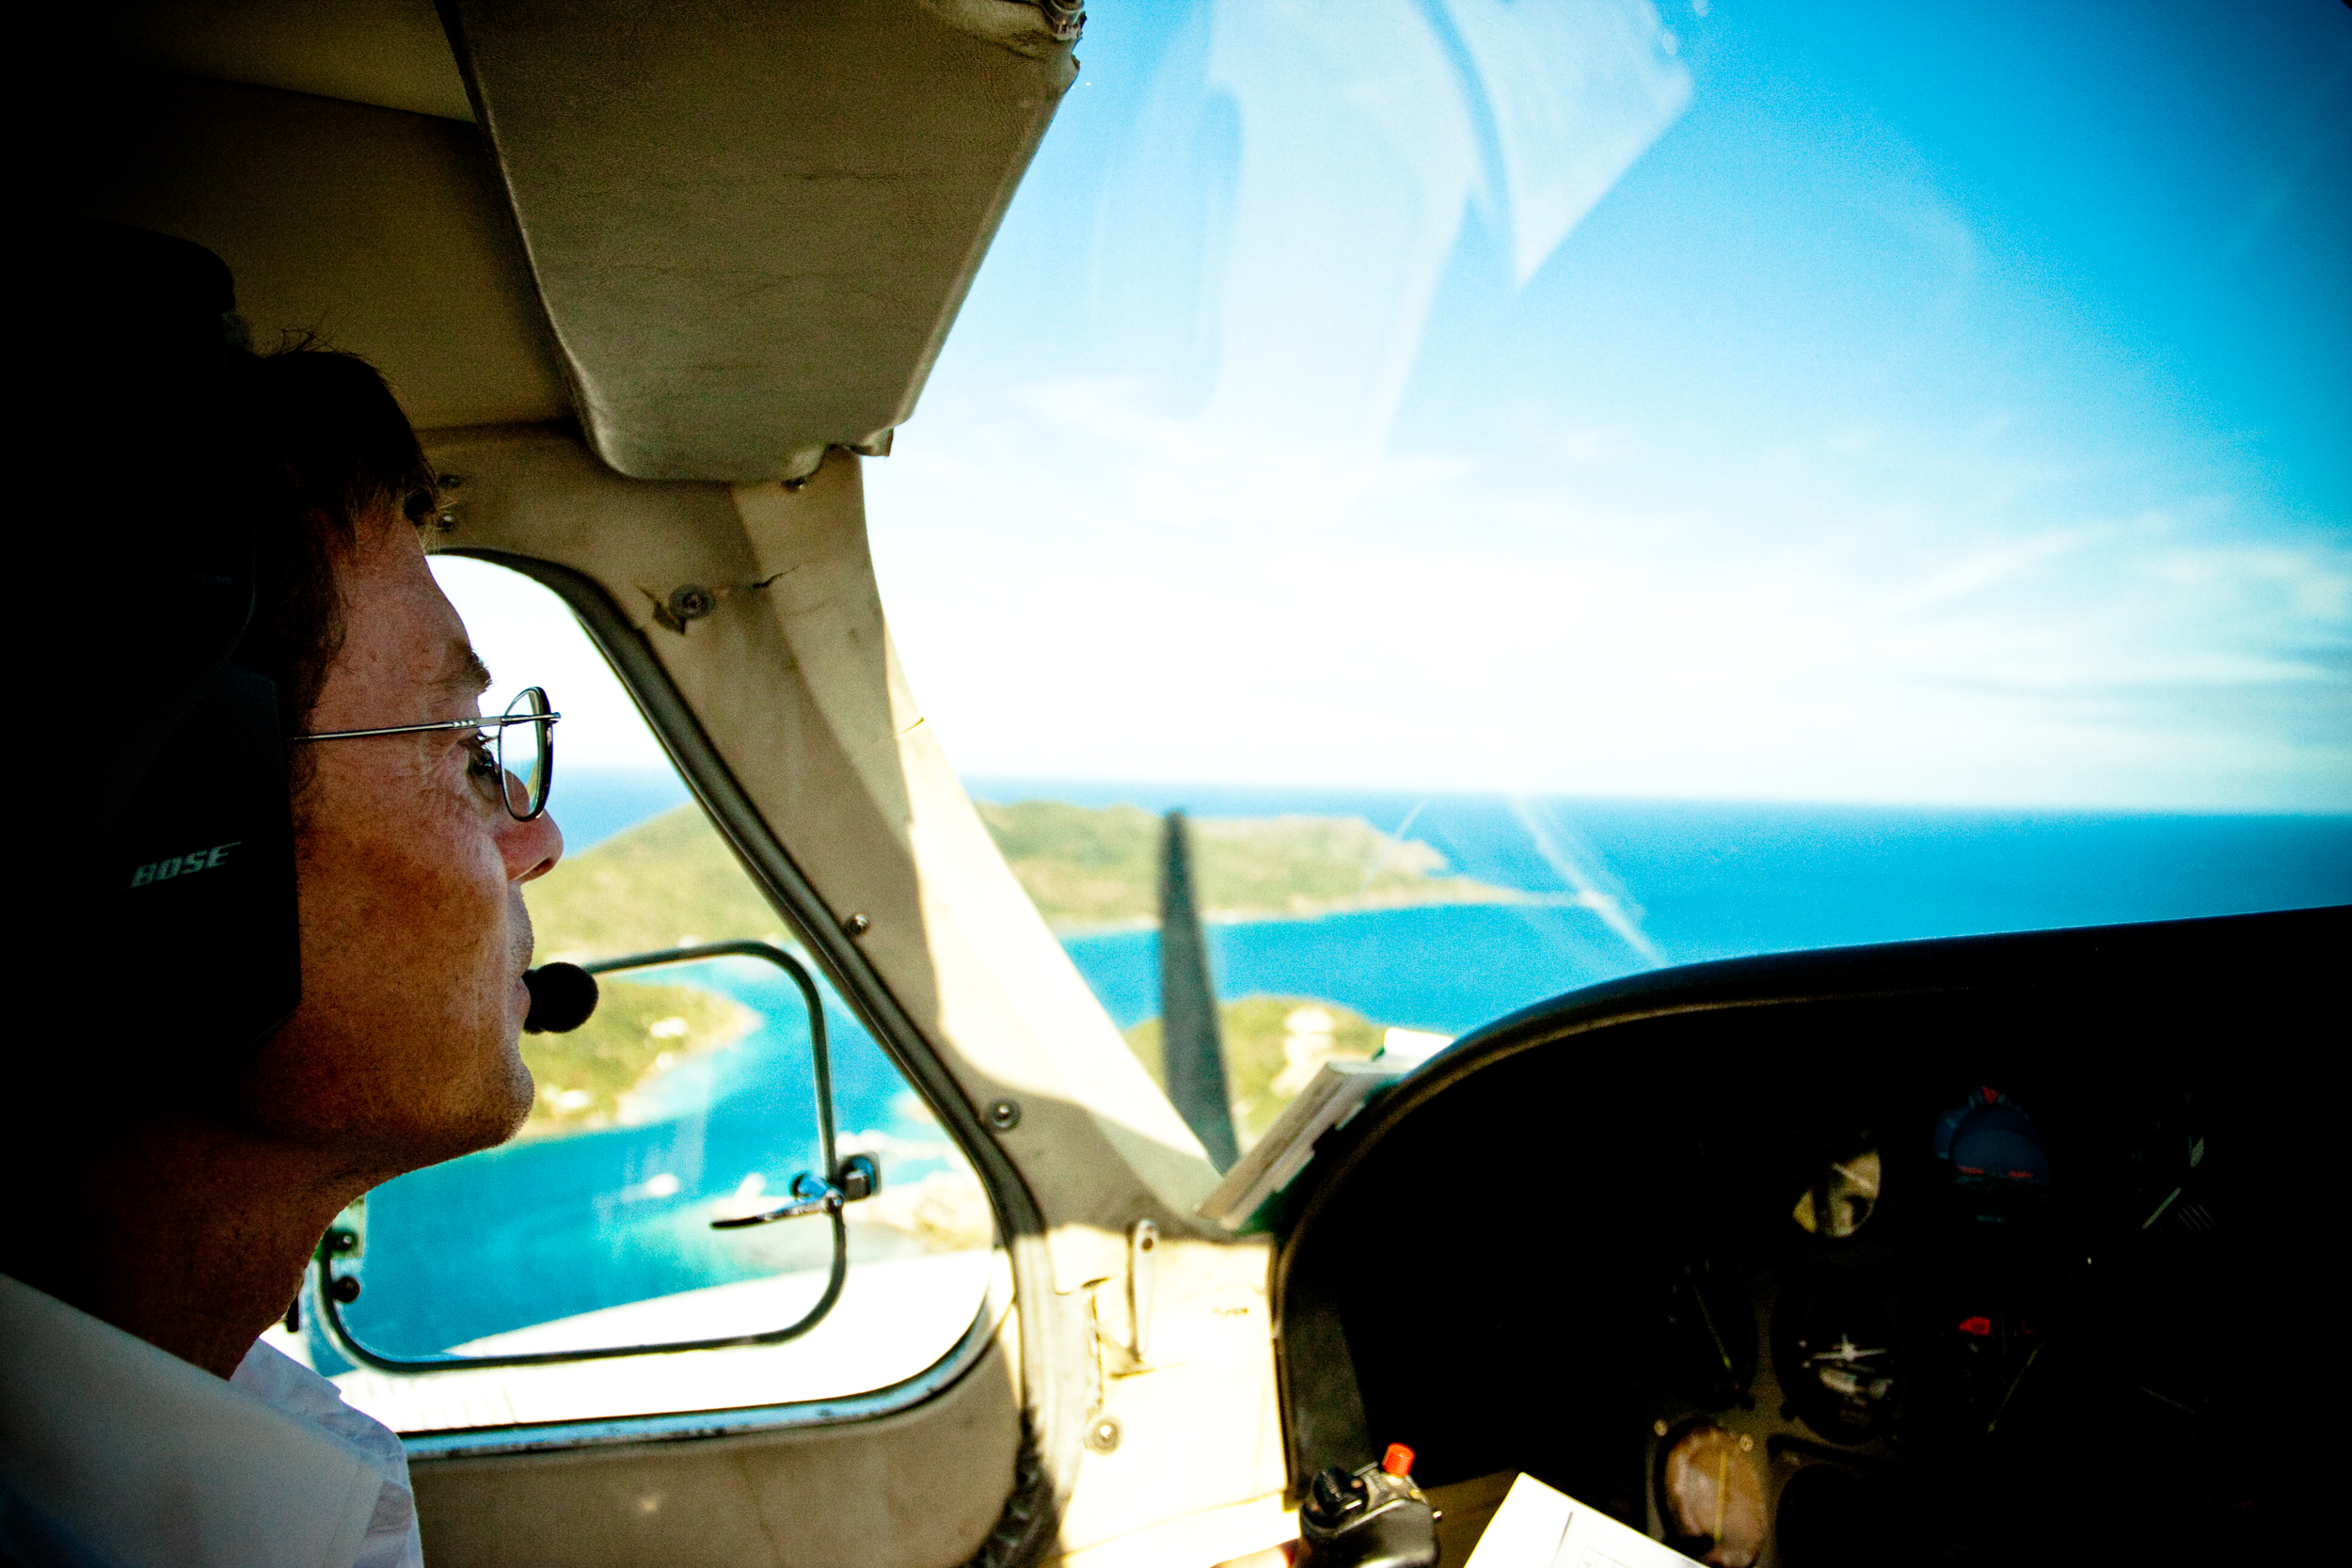 Pilot looks out across blue Caribbean waters during a small inter island flight.